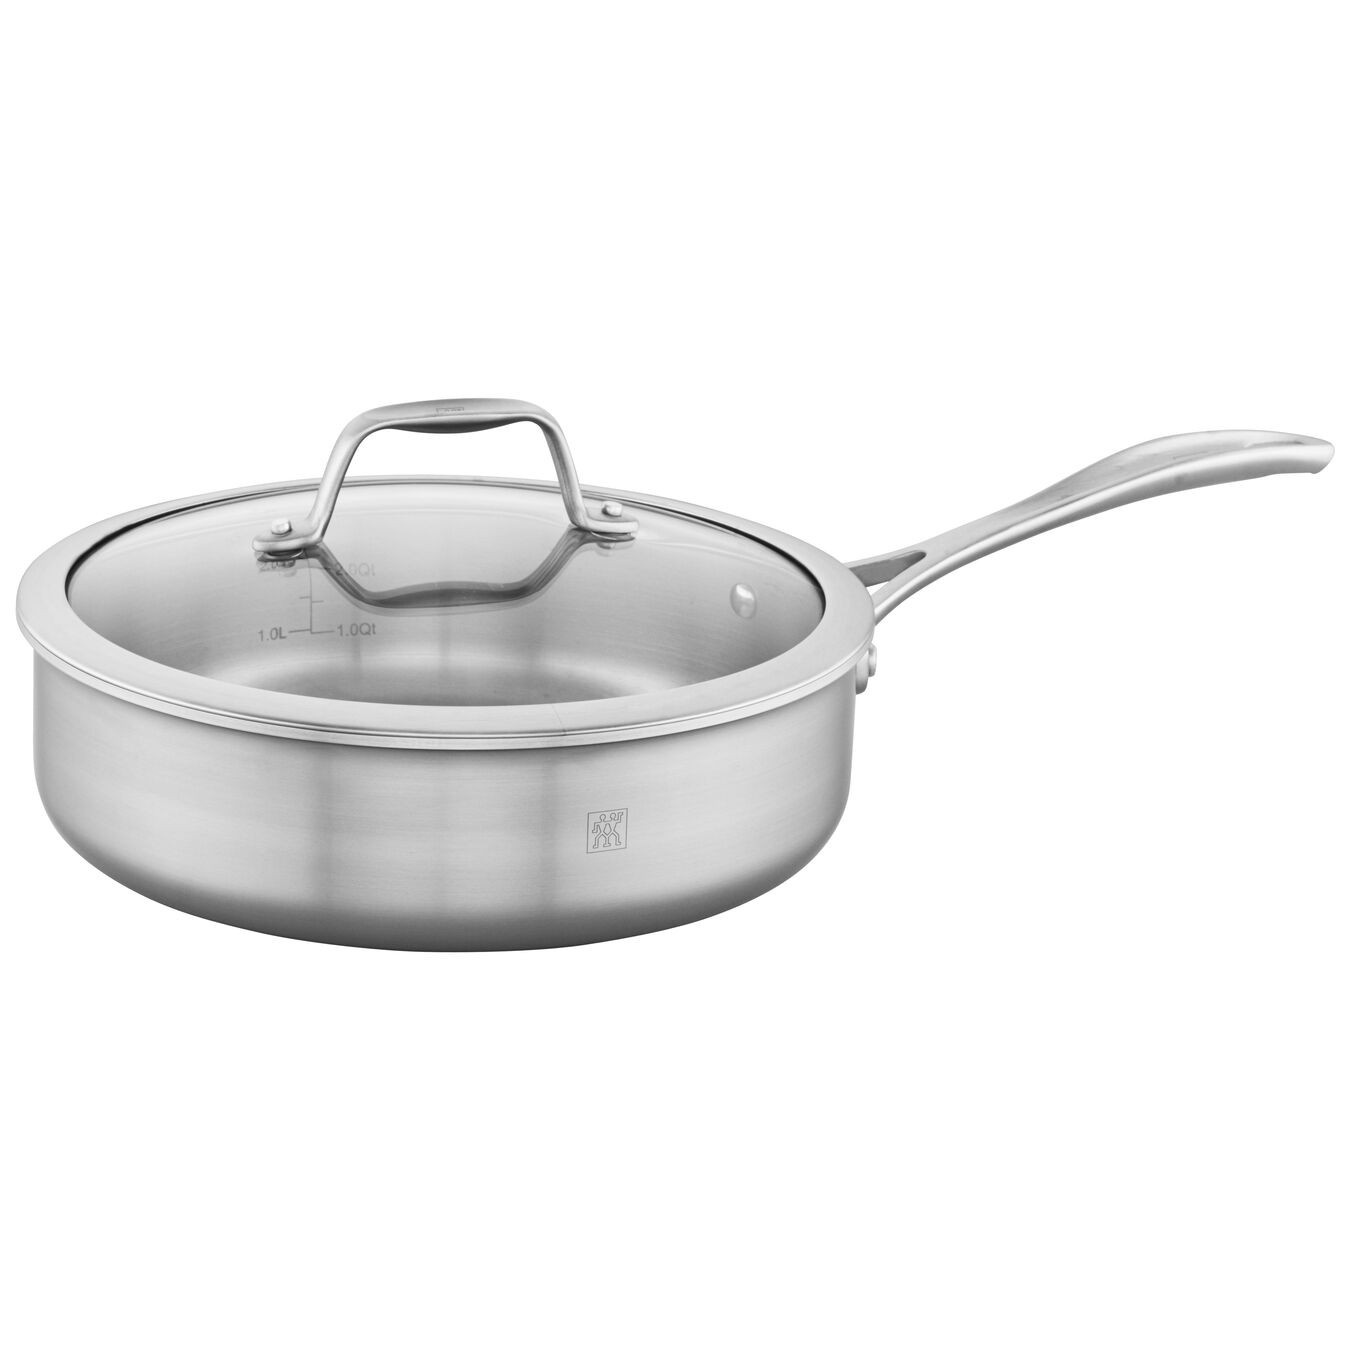 3-ply 12-pc Stainless Steel Cookware Set,,large 10